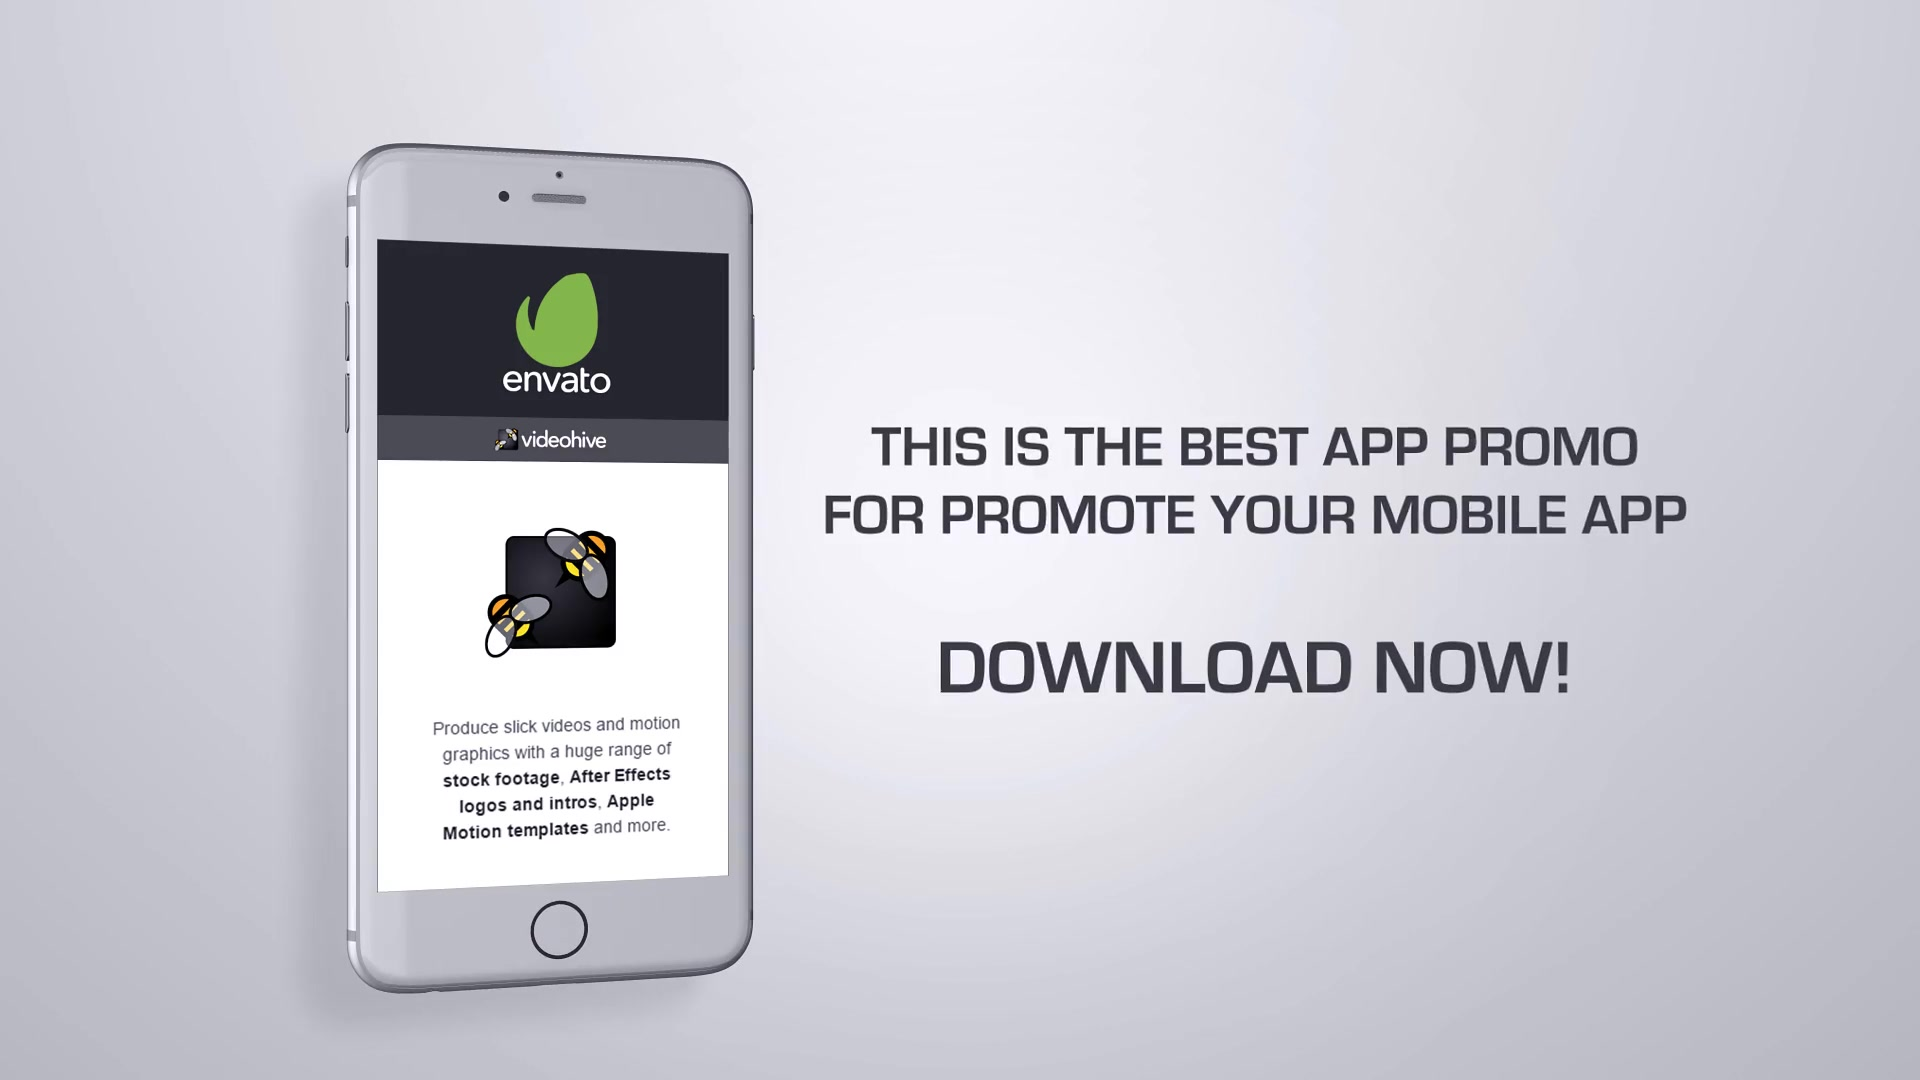 Mobile app promo download videohive 19297968 for Discount mobili on line